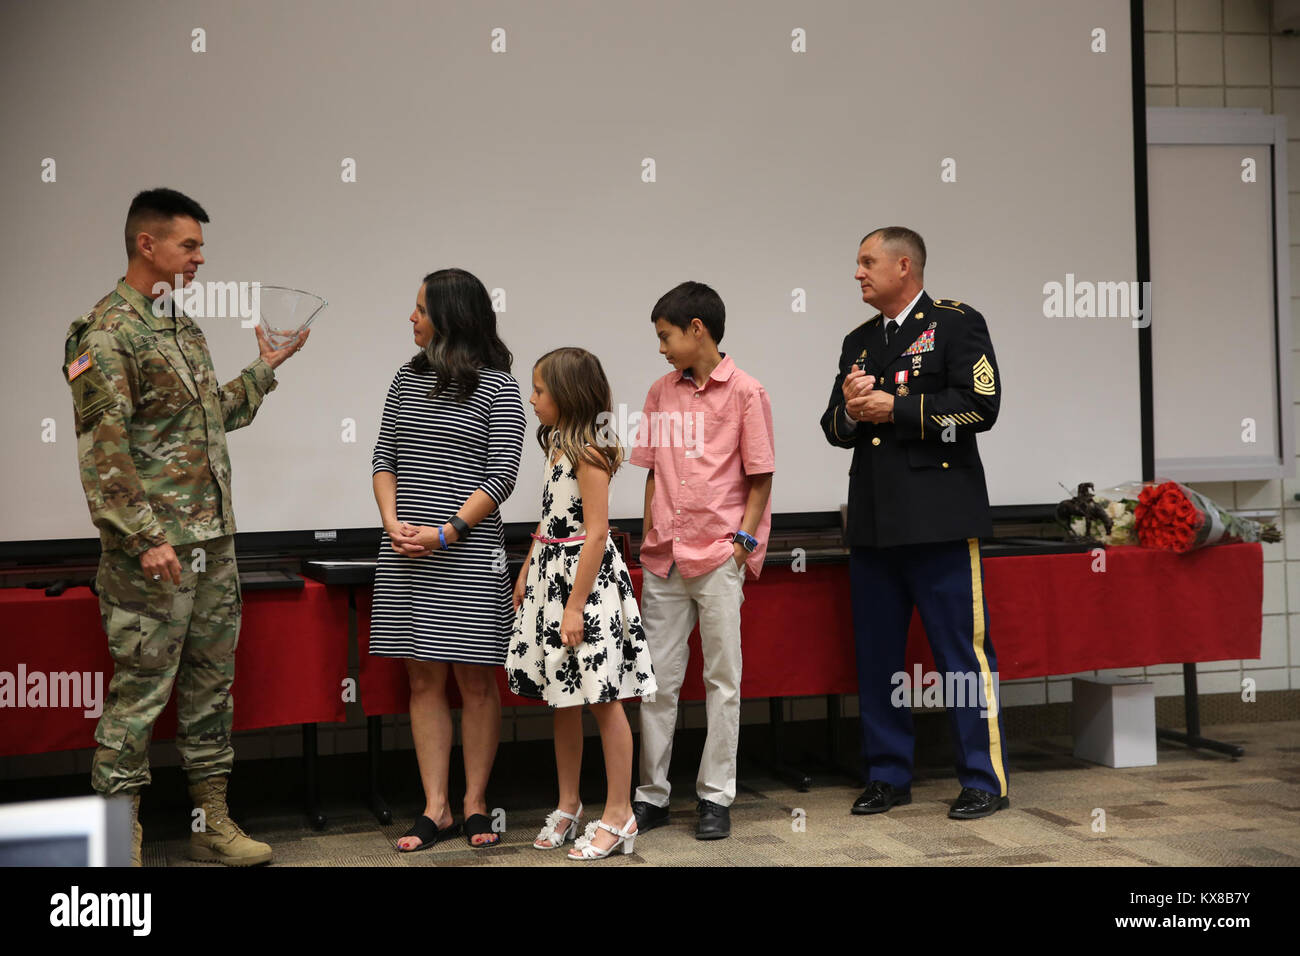 US military National Guard awards and promotion ceremony